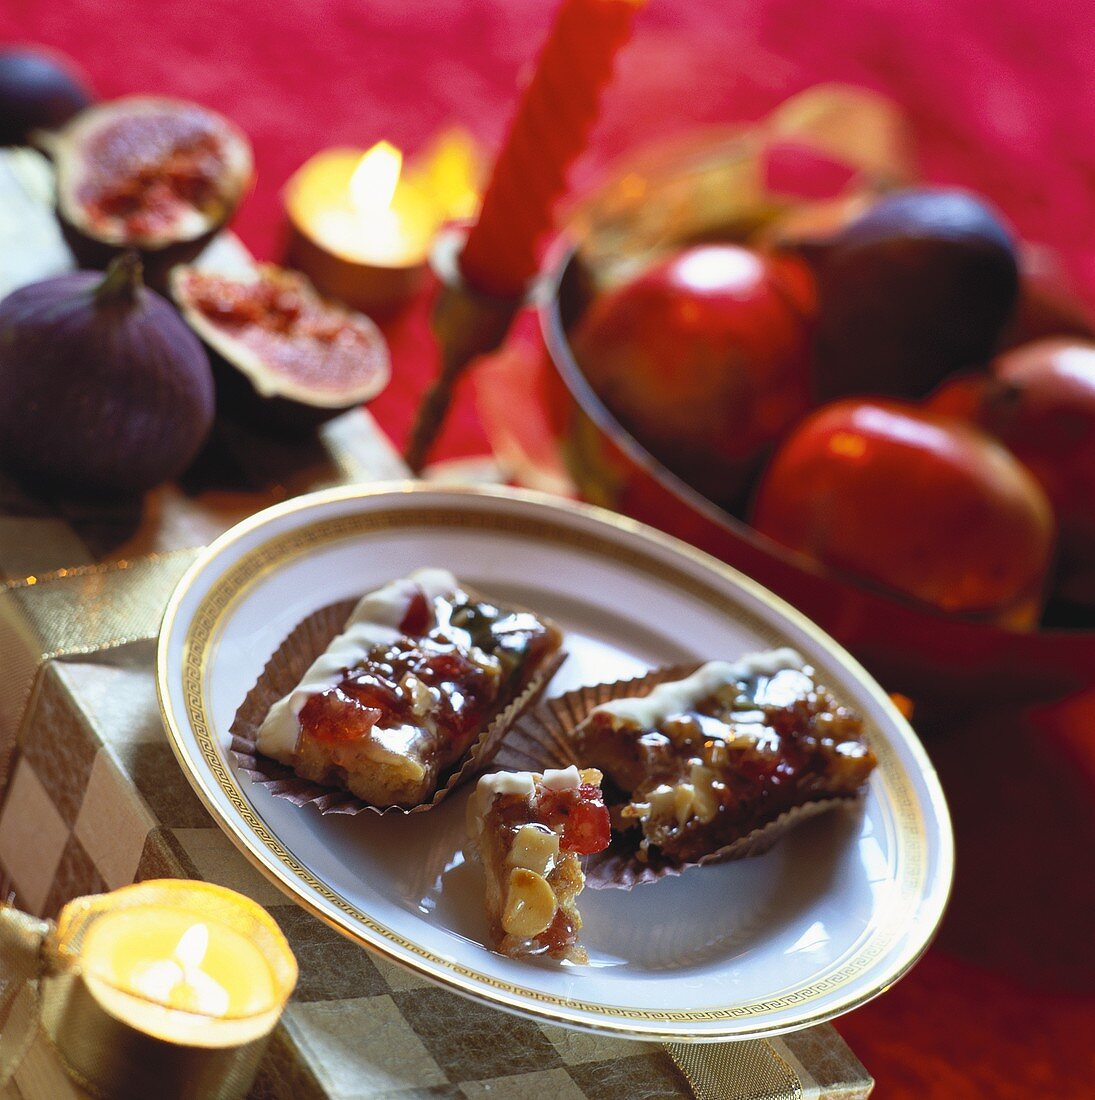 Florentine with white chocolate; Candles; Fruit